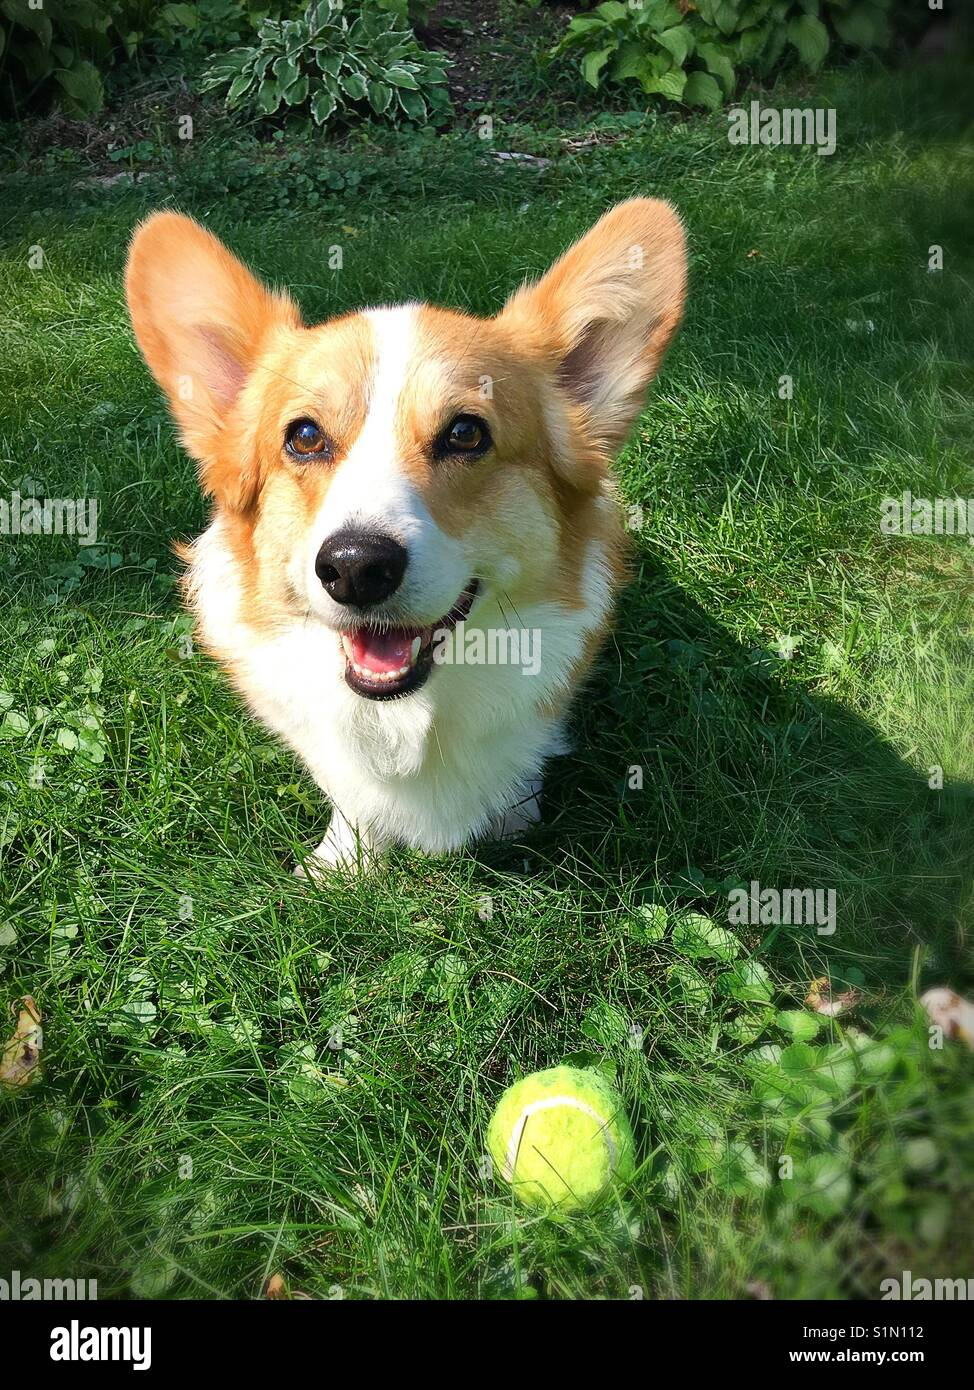 A cute smiling corgi in the grass with a tennis ball. - Stock Image